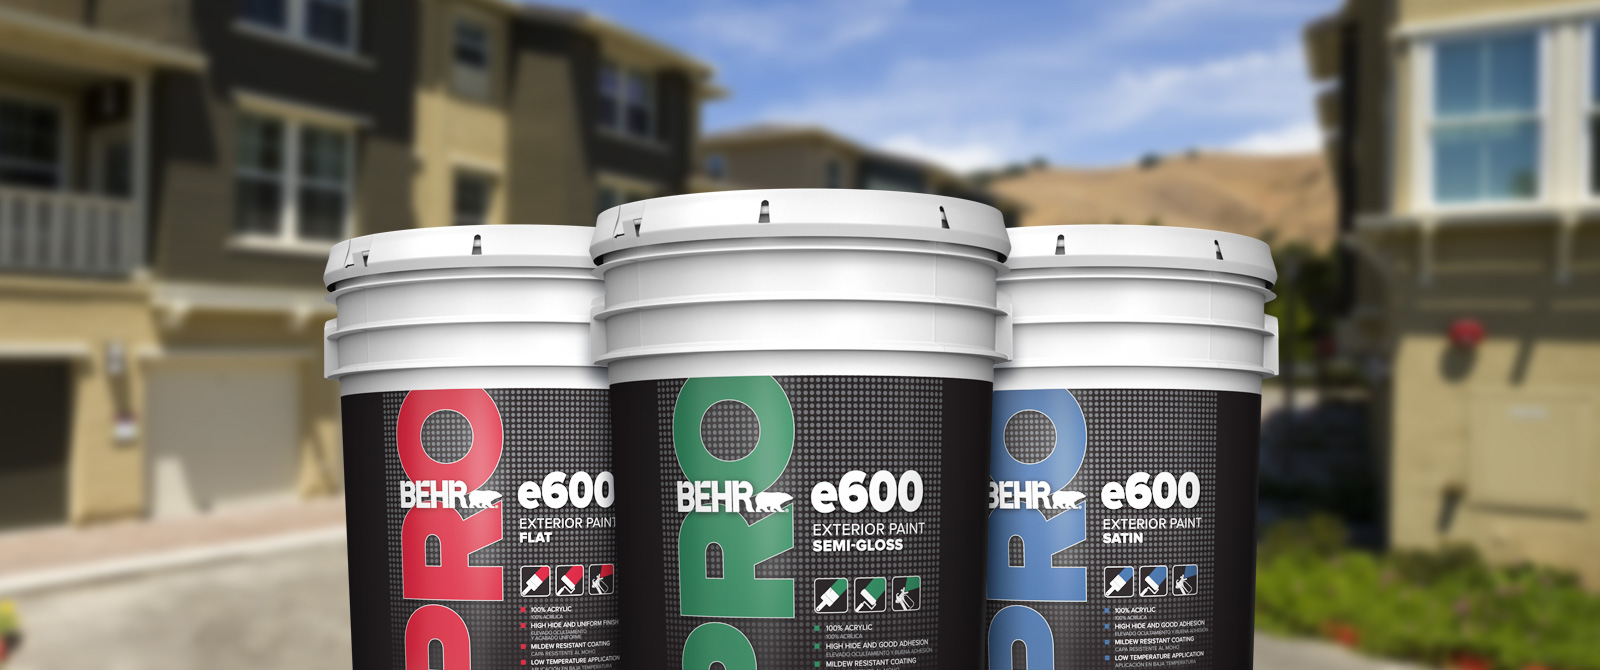 BEHR PRO exterior e600 products landing page desktop image featuring 5 gallon e600 can.